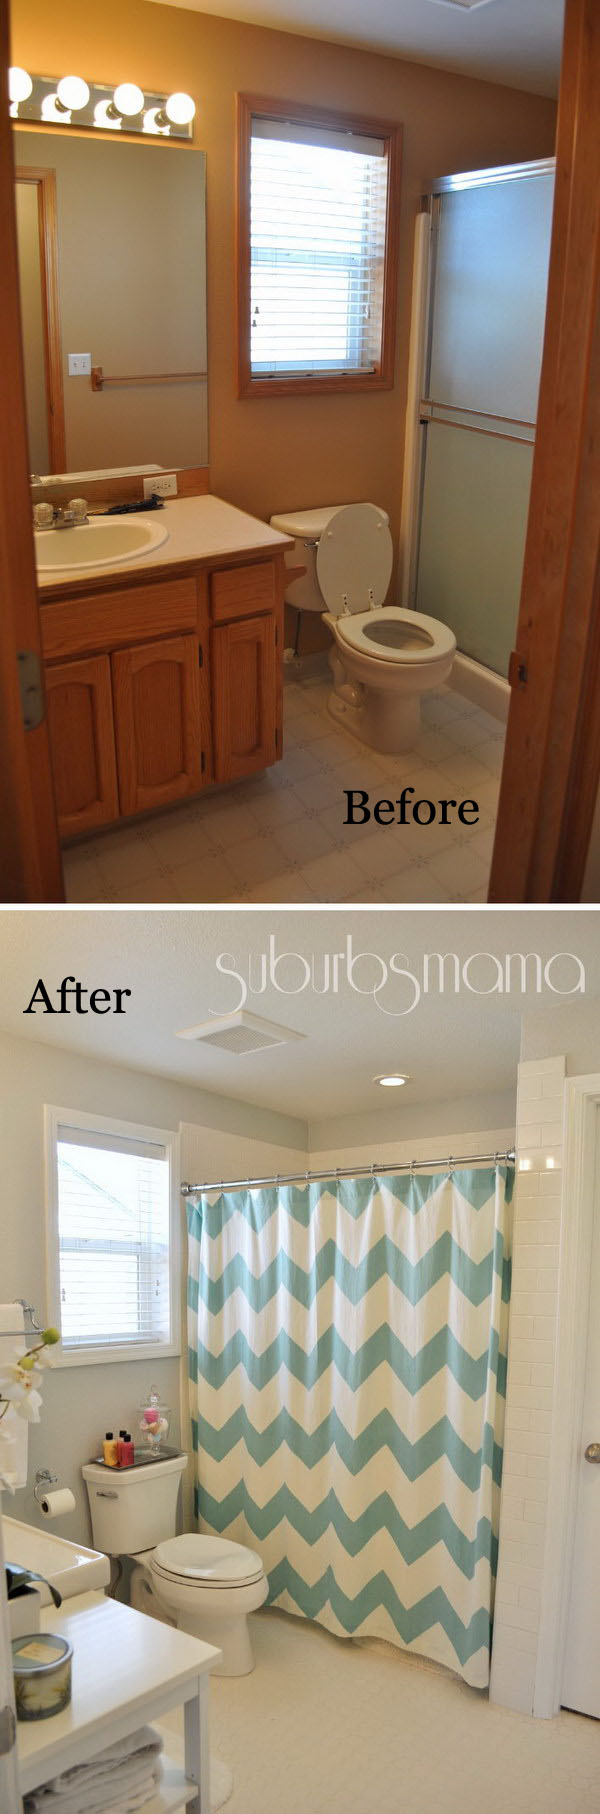 27-28-bathroom-remodel-before-and-after